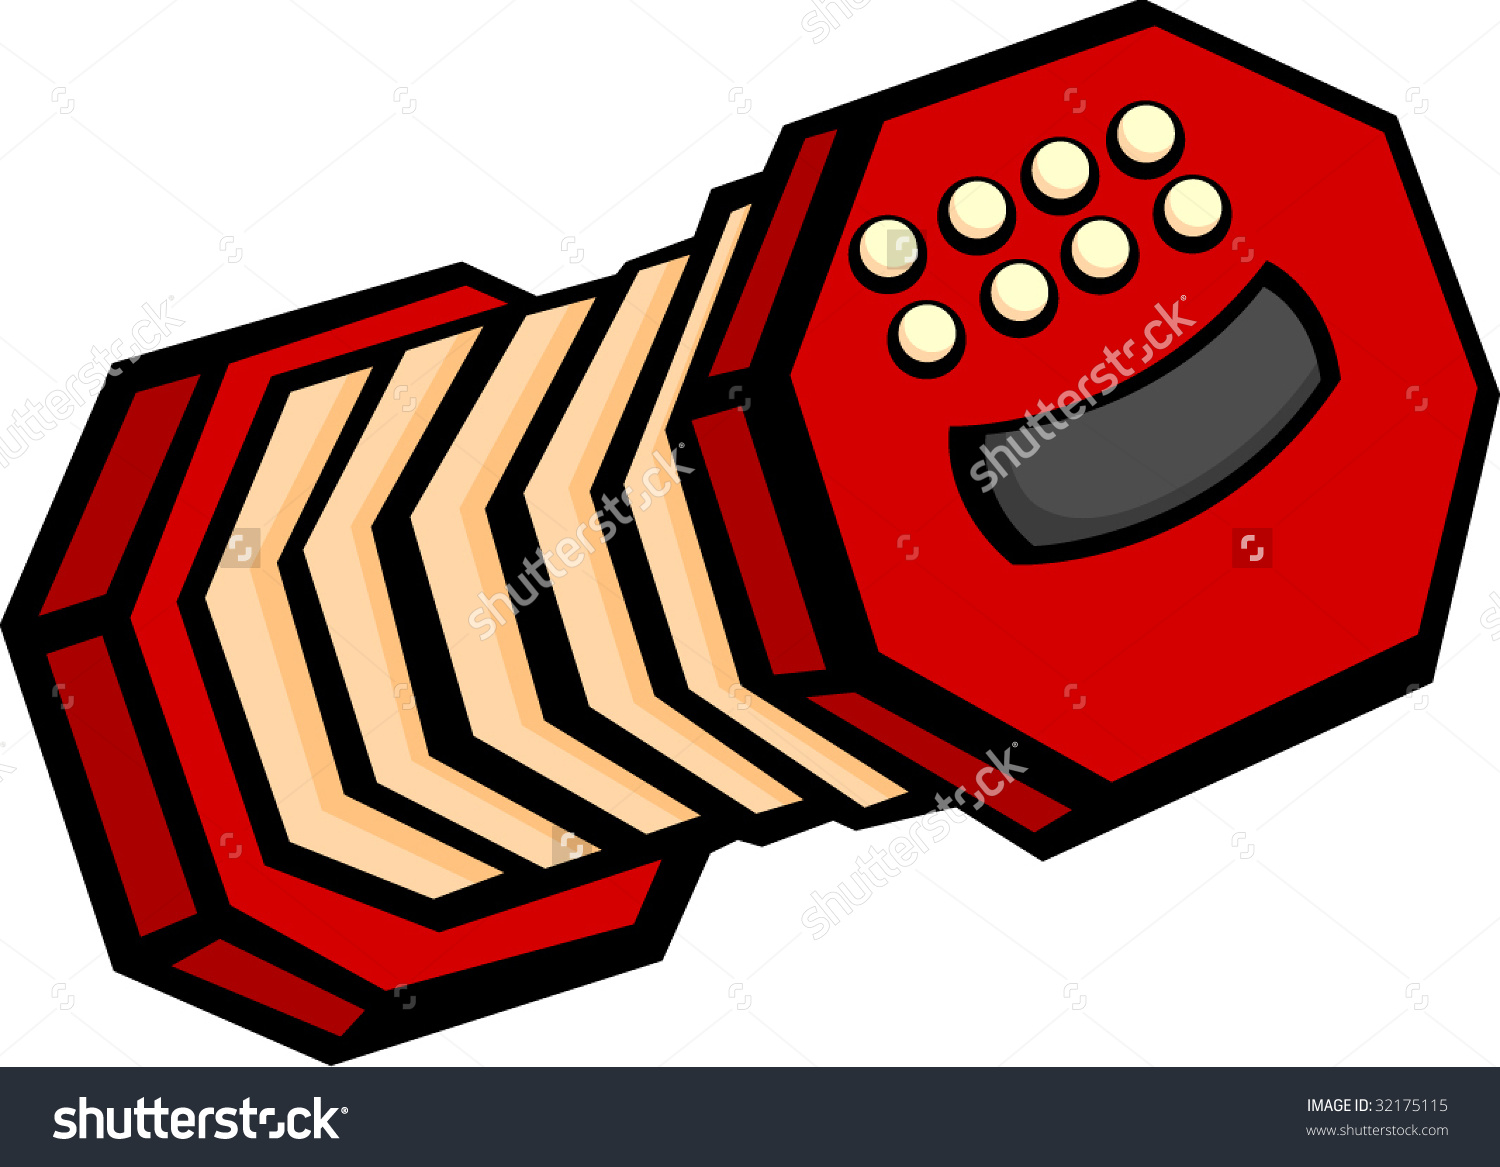 Concertina Accordion Musical Instrument Stock Vector 32175115.